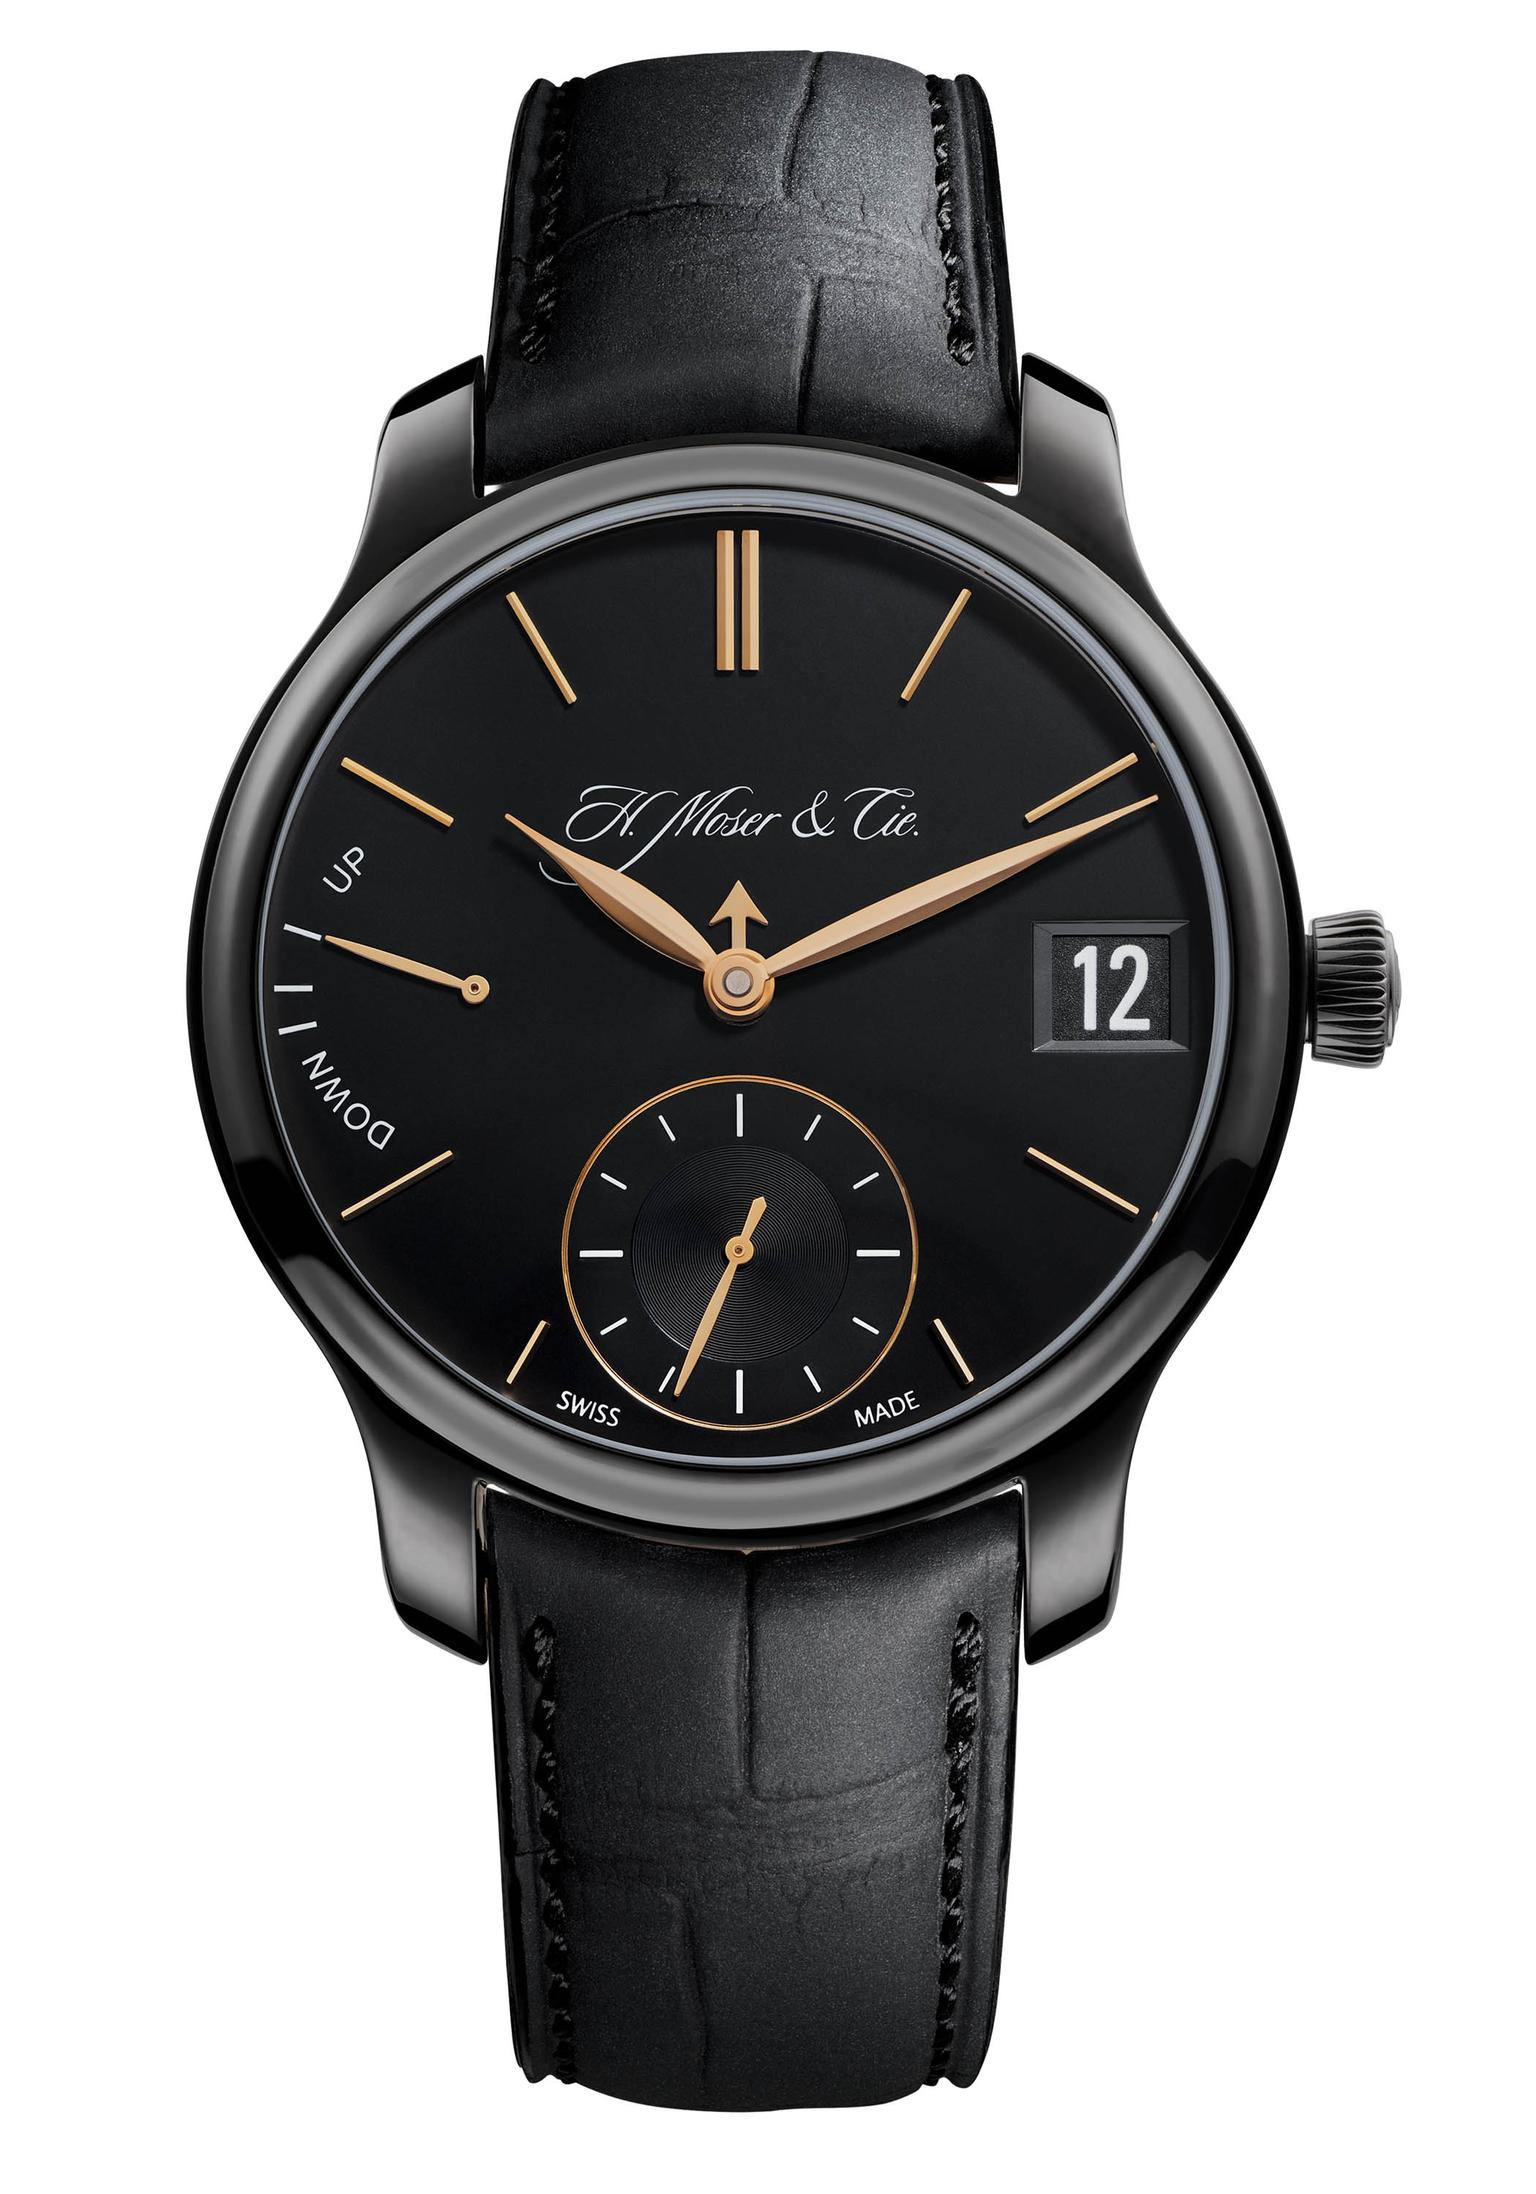 H.-Moser-&-Cie-P-Calendar-Black-Watch-Zoom